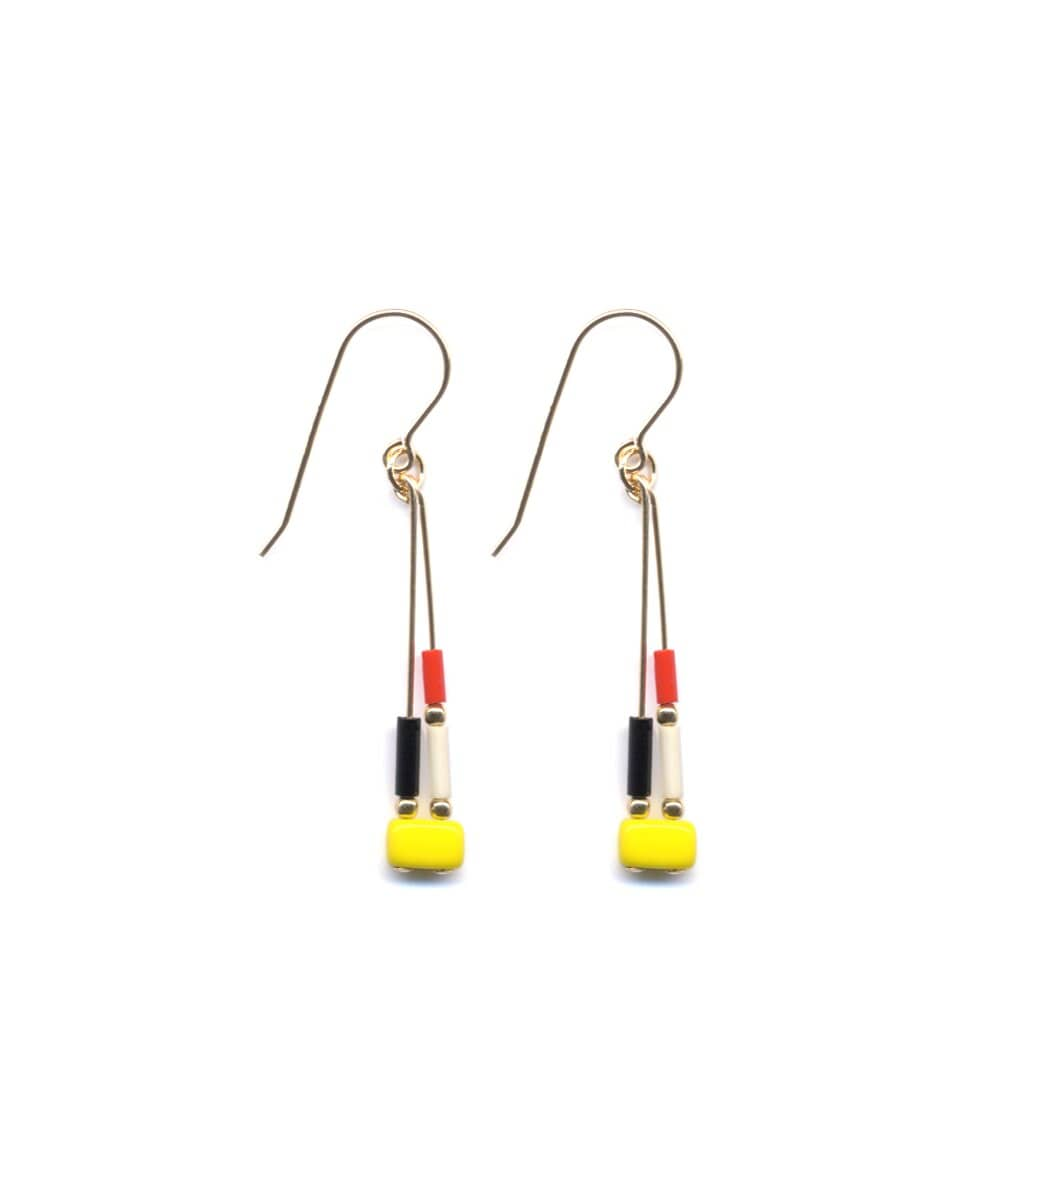 Irk Jewelry I. Ronni Kappos E1441 Yellow Mosaic Earrings